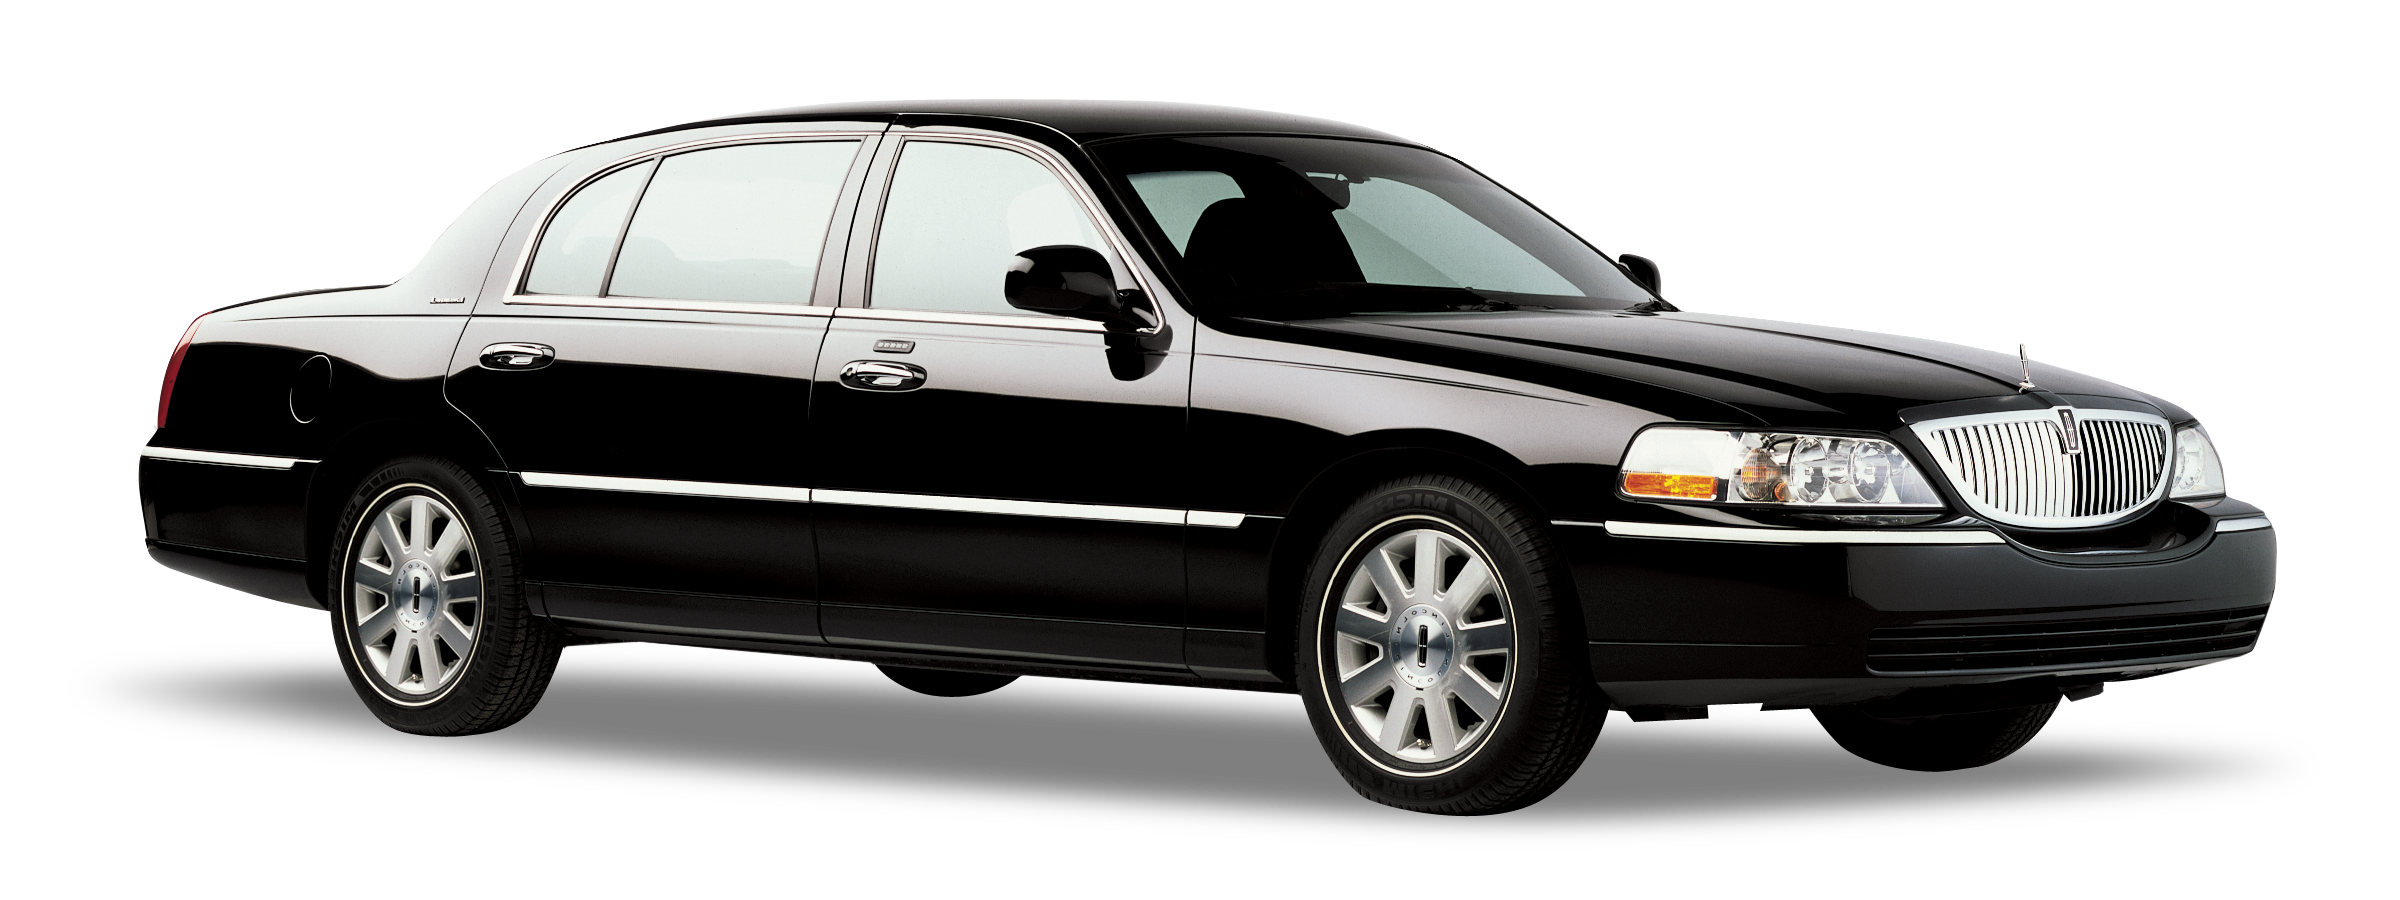 300 Lincoln Town Car Best Deal Low Price Uber Nyc Market